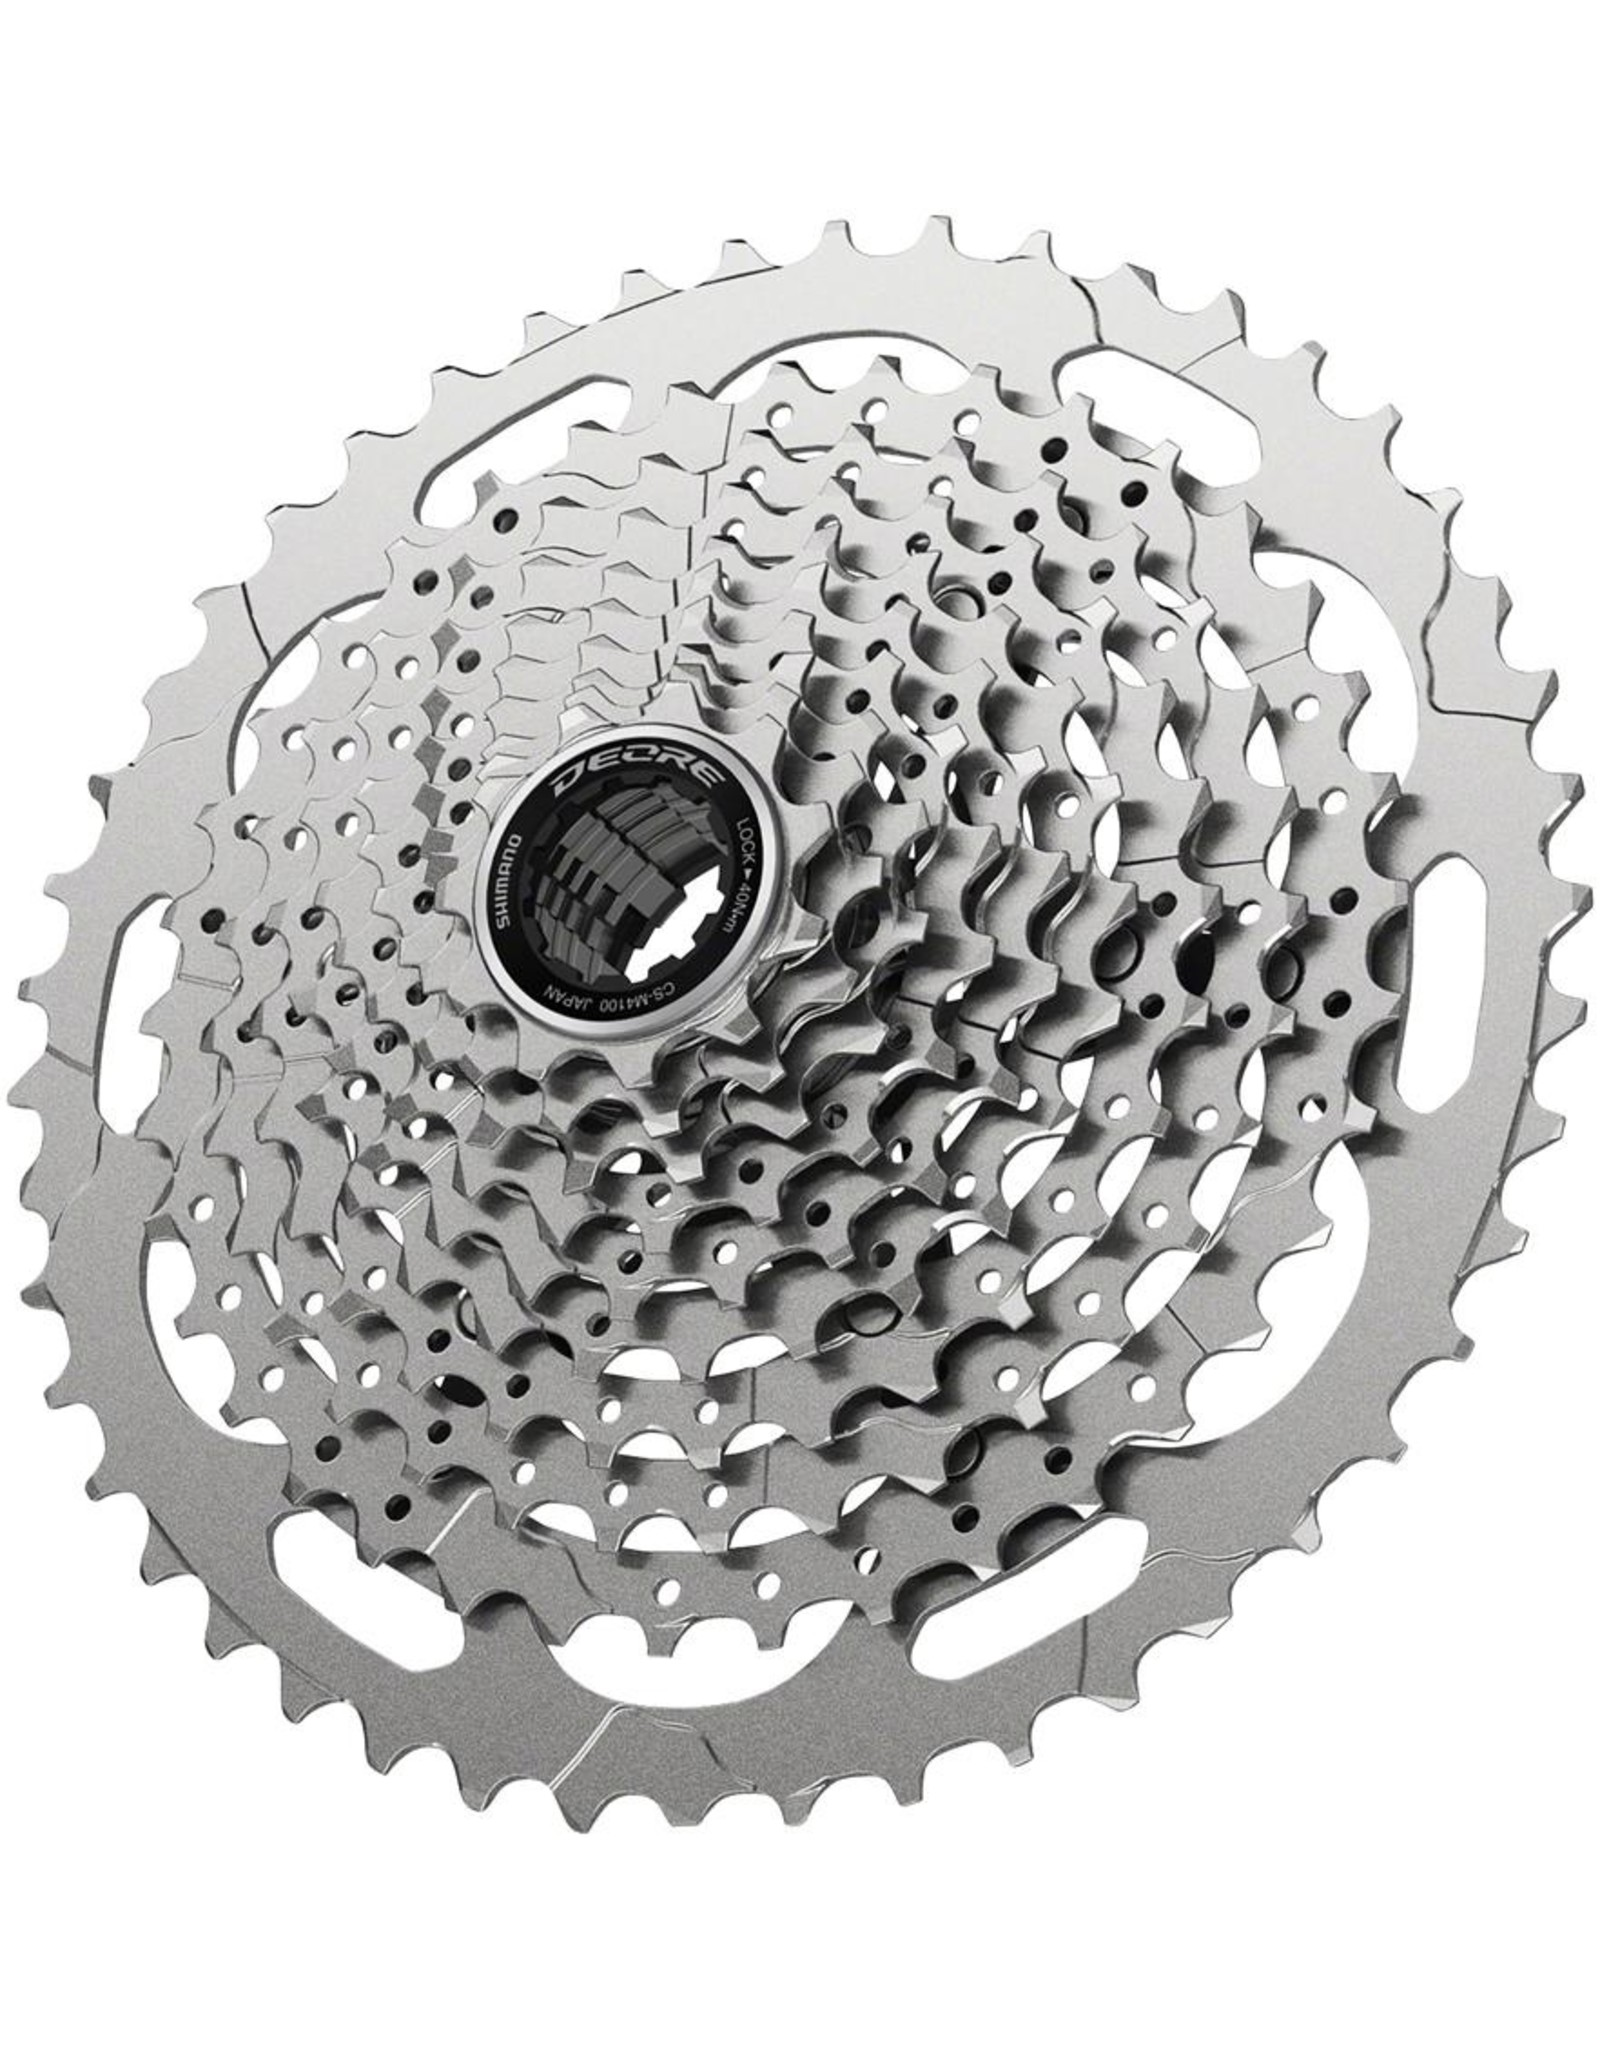 Shimano CASSETTE SPROCKET, CS-M4100, 11-46T, DEORE, 10-SPEED